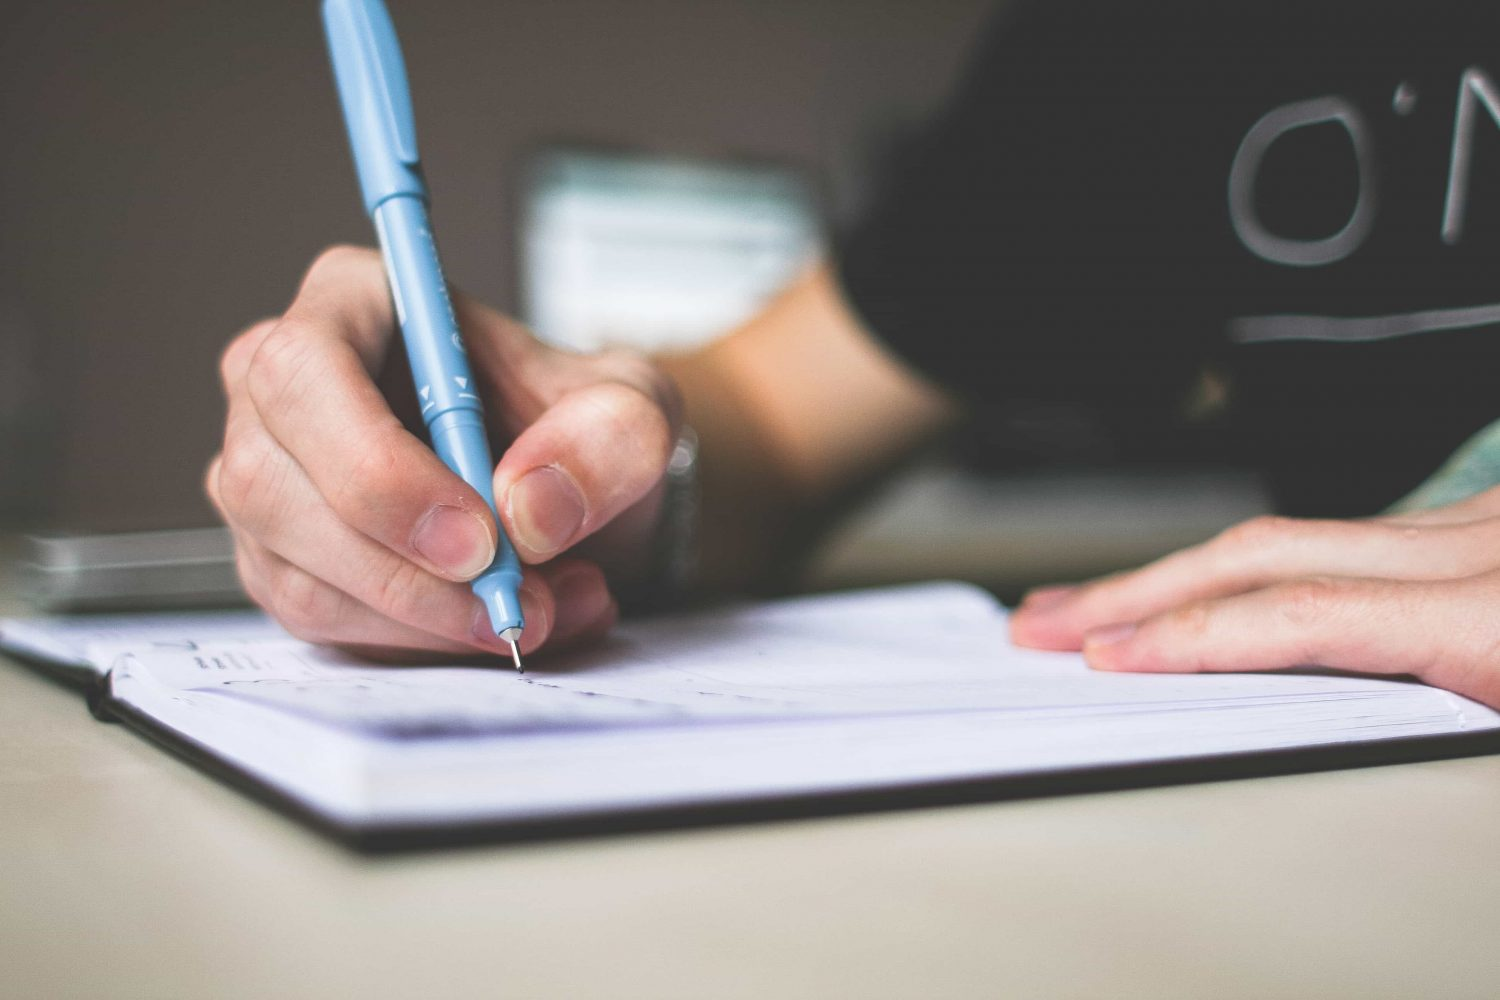 criteria for choosing a high-rated essay writing service